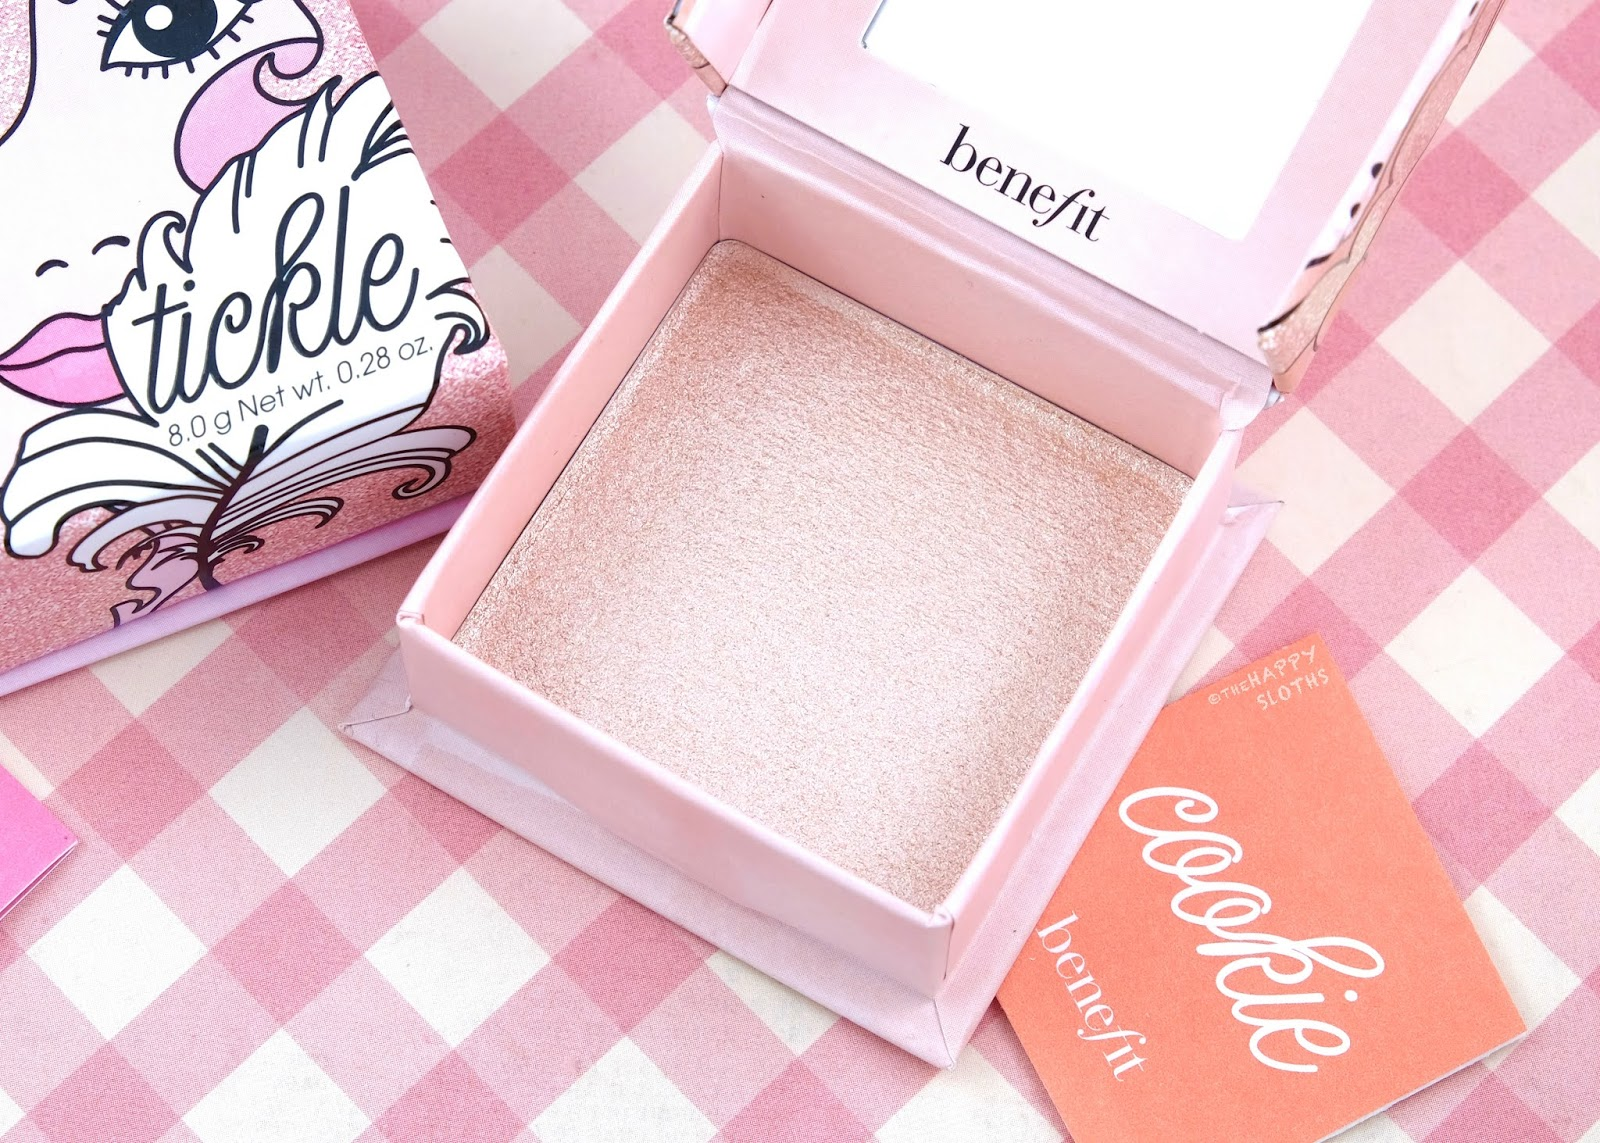 Benefit Cosmetics | Cookie Highlighter: Review and Swatches